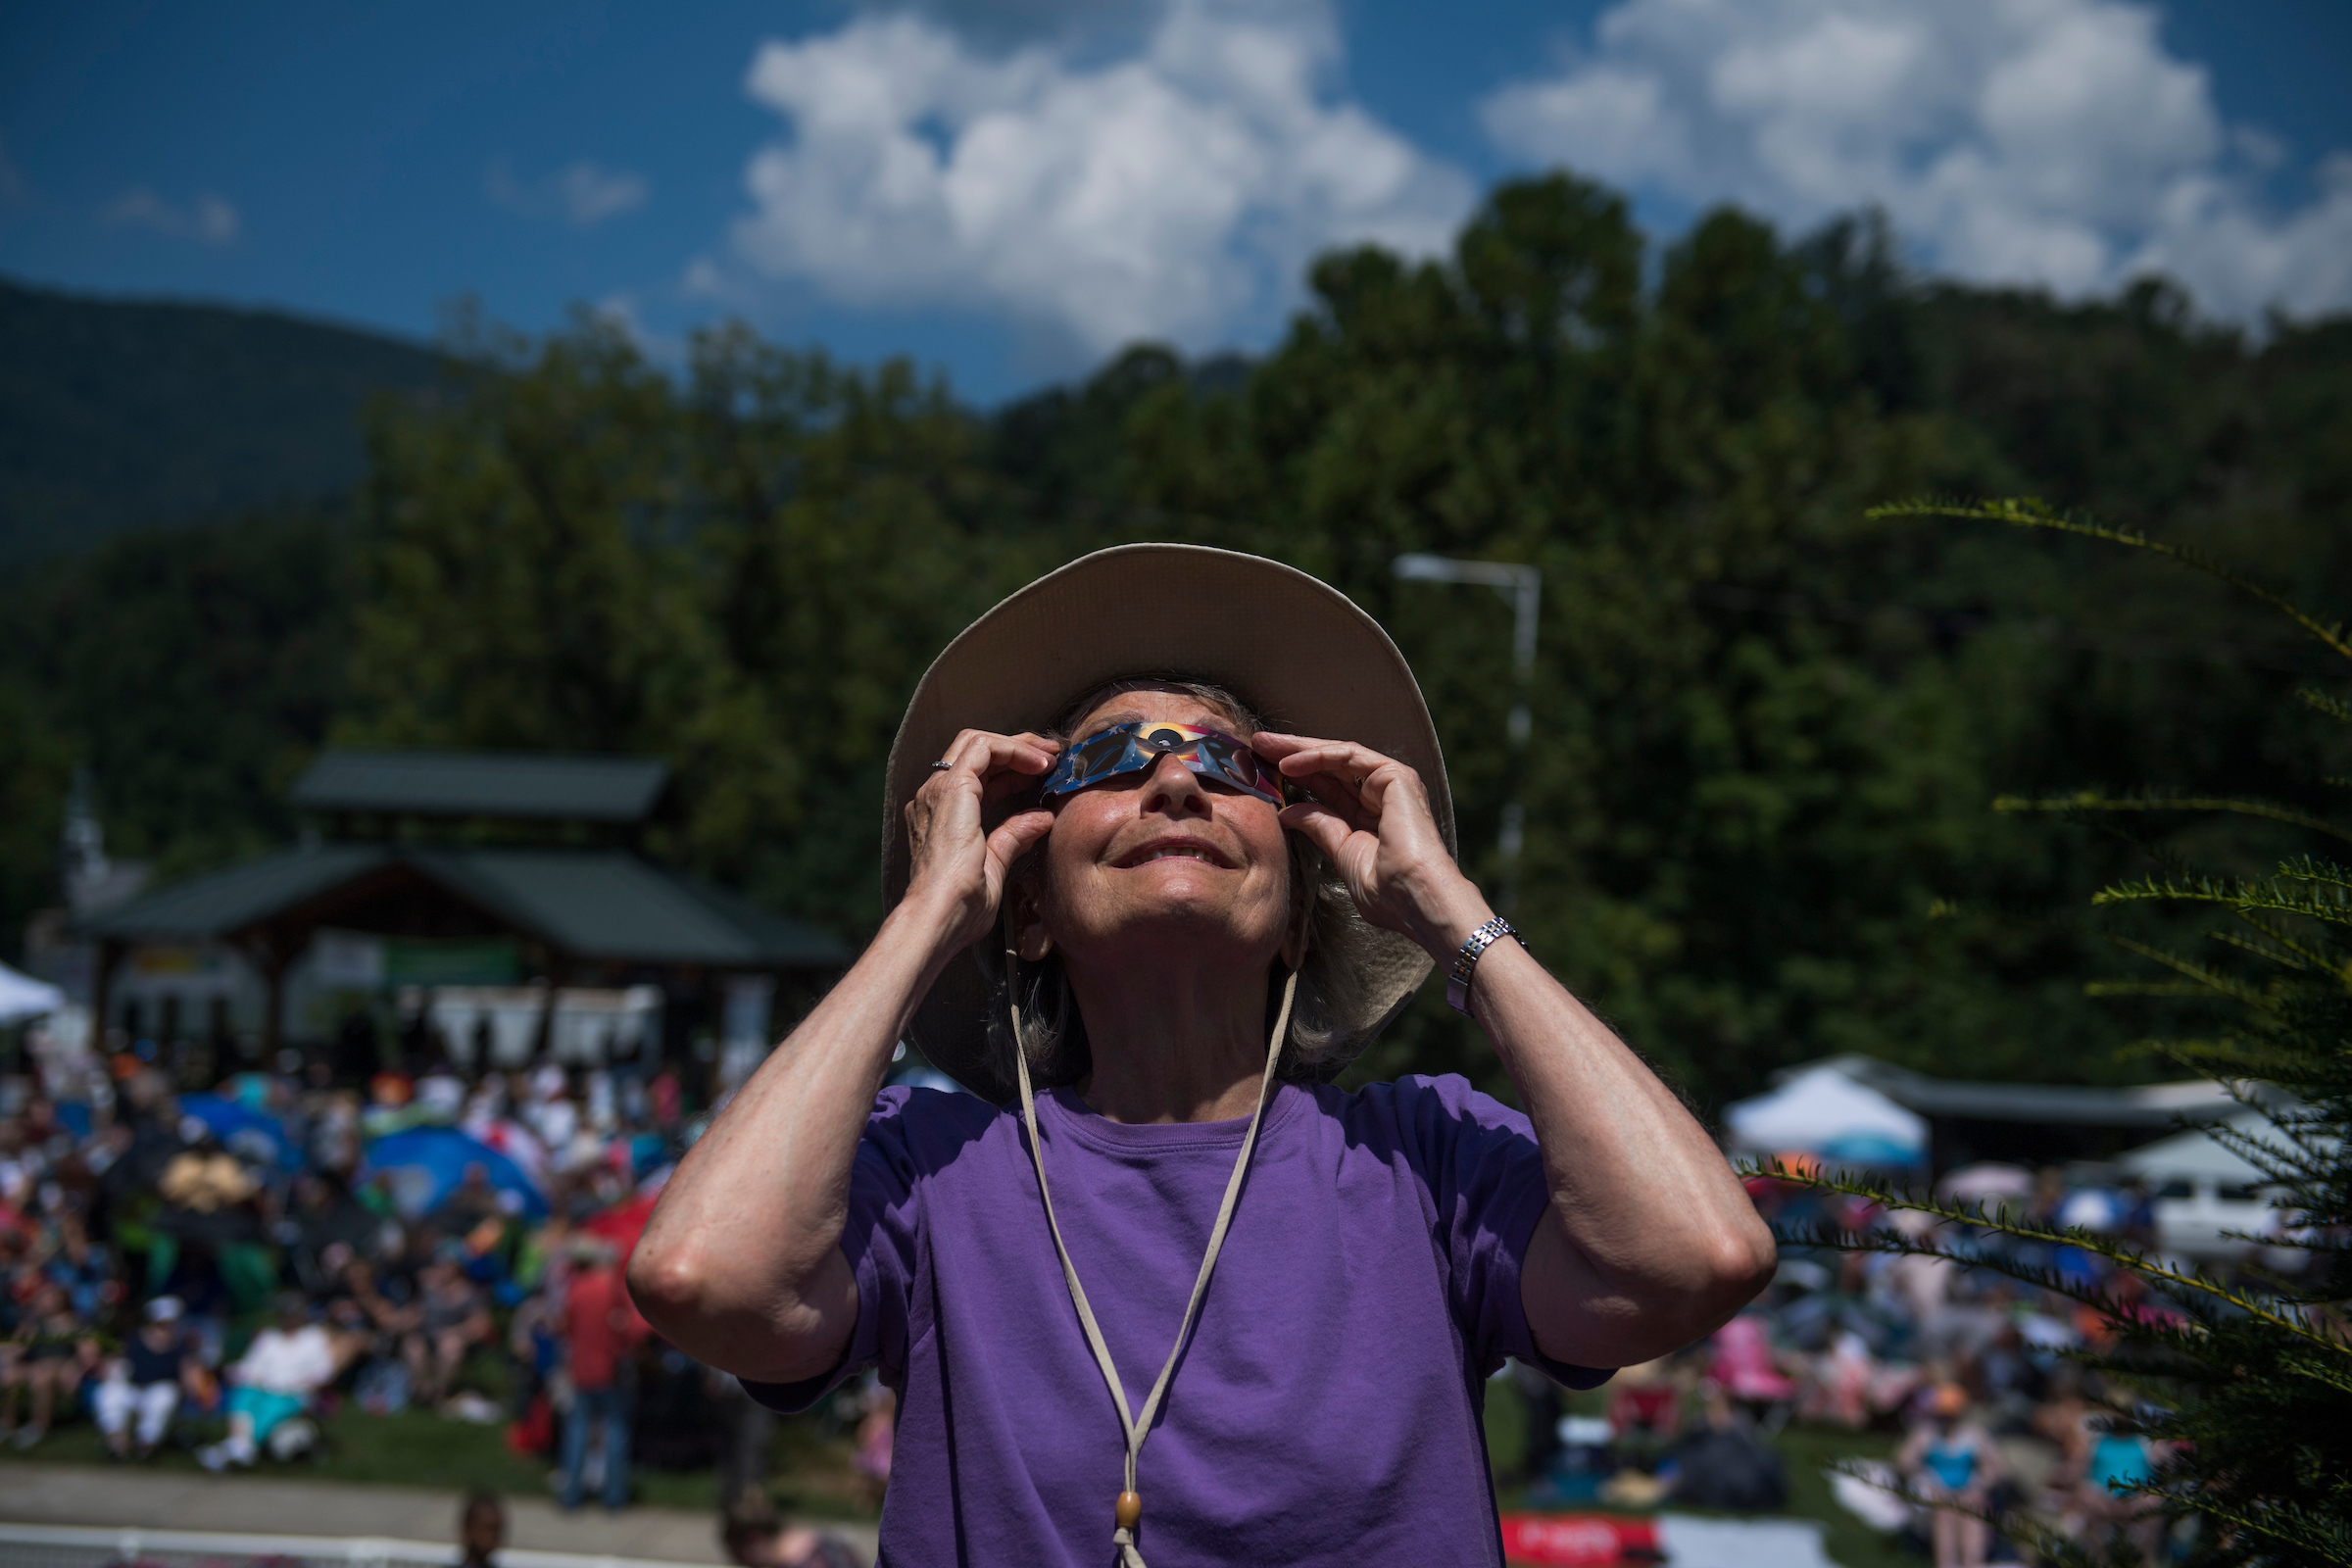 UNITED STATES - AUGUST 21: A spectator views the solar eclipse in Sylva, N.C. on August 21, 2017. The town lies in the path of totality.(Photo By Tom Williams/CQ Roll Call)